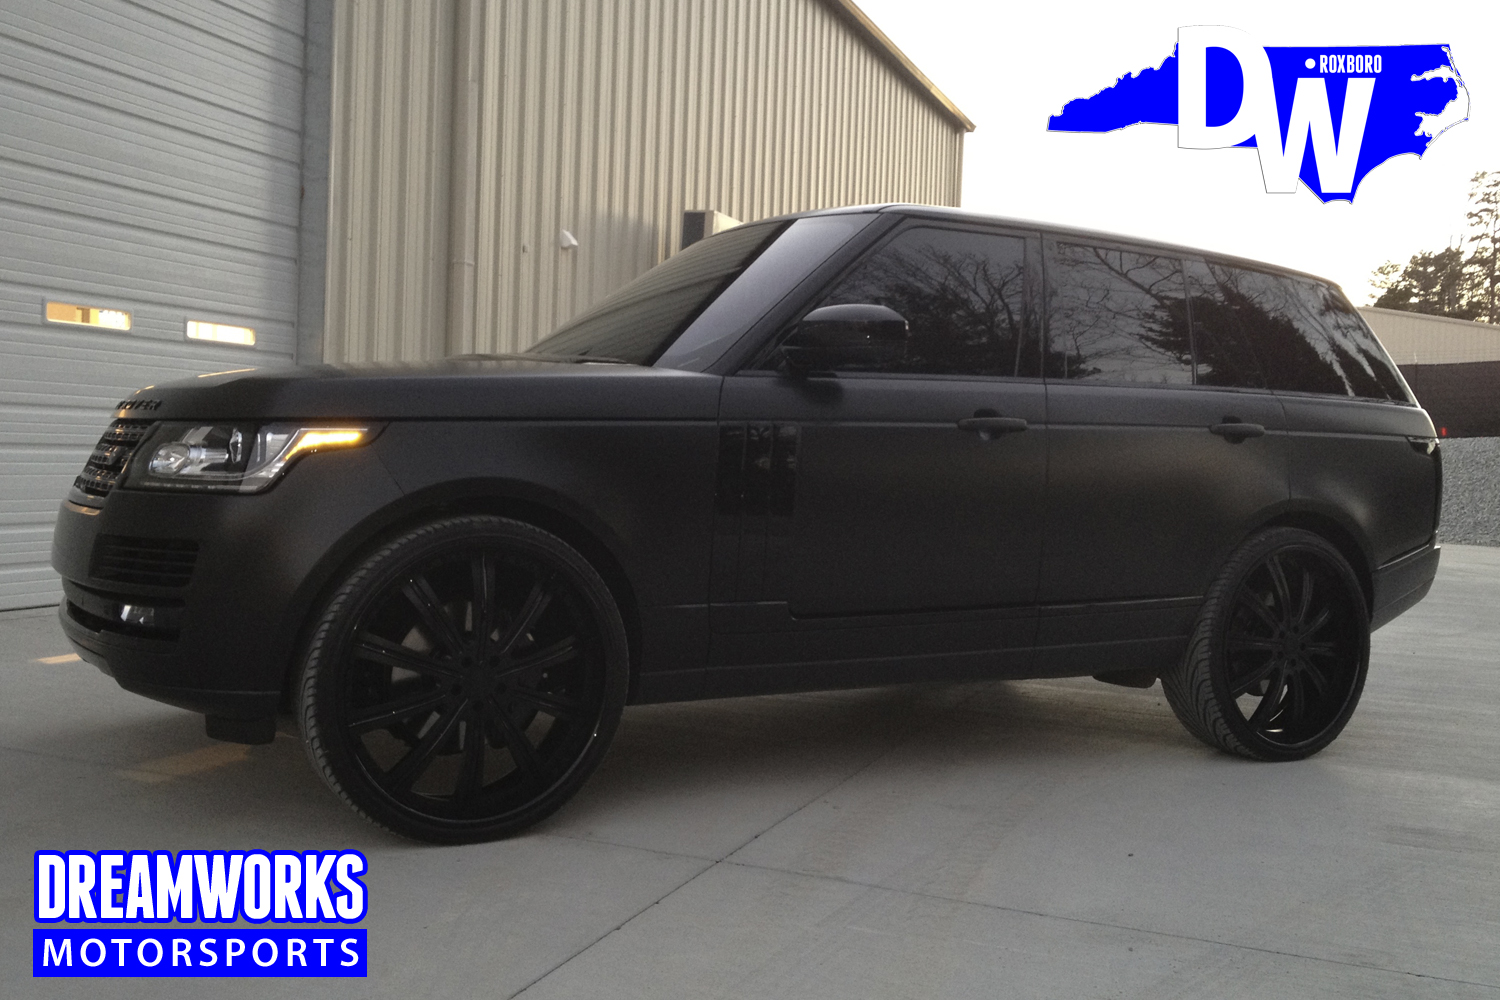 Wesley-Mathews-Range-Rover-Matte-Wrapped-By-Dreamworks-Motorsports-13.jpg